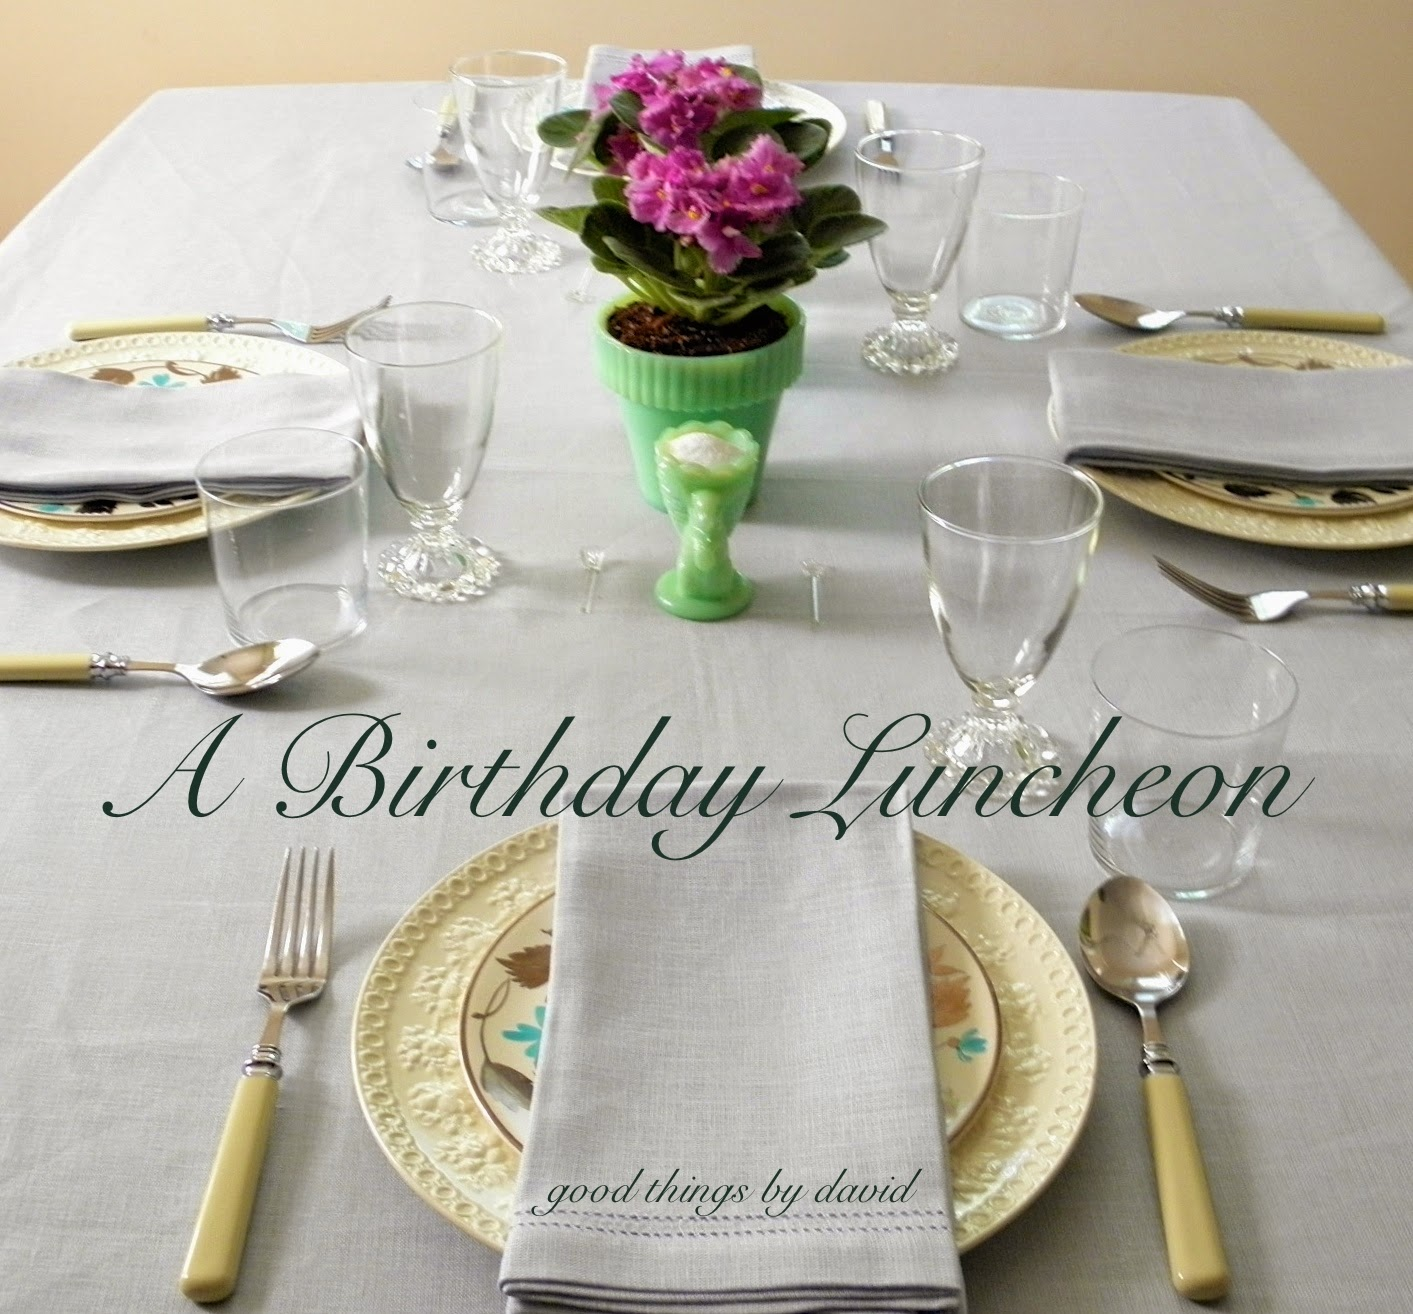 Good Things By David: A Birthday Luncheon